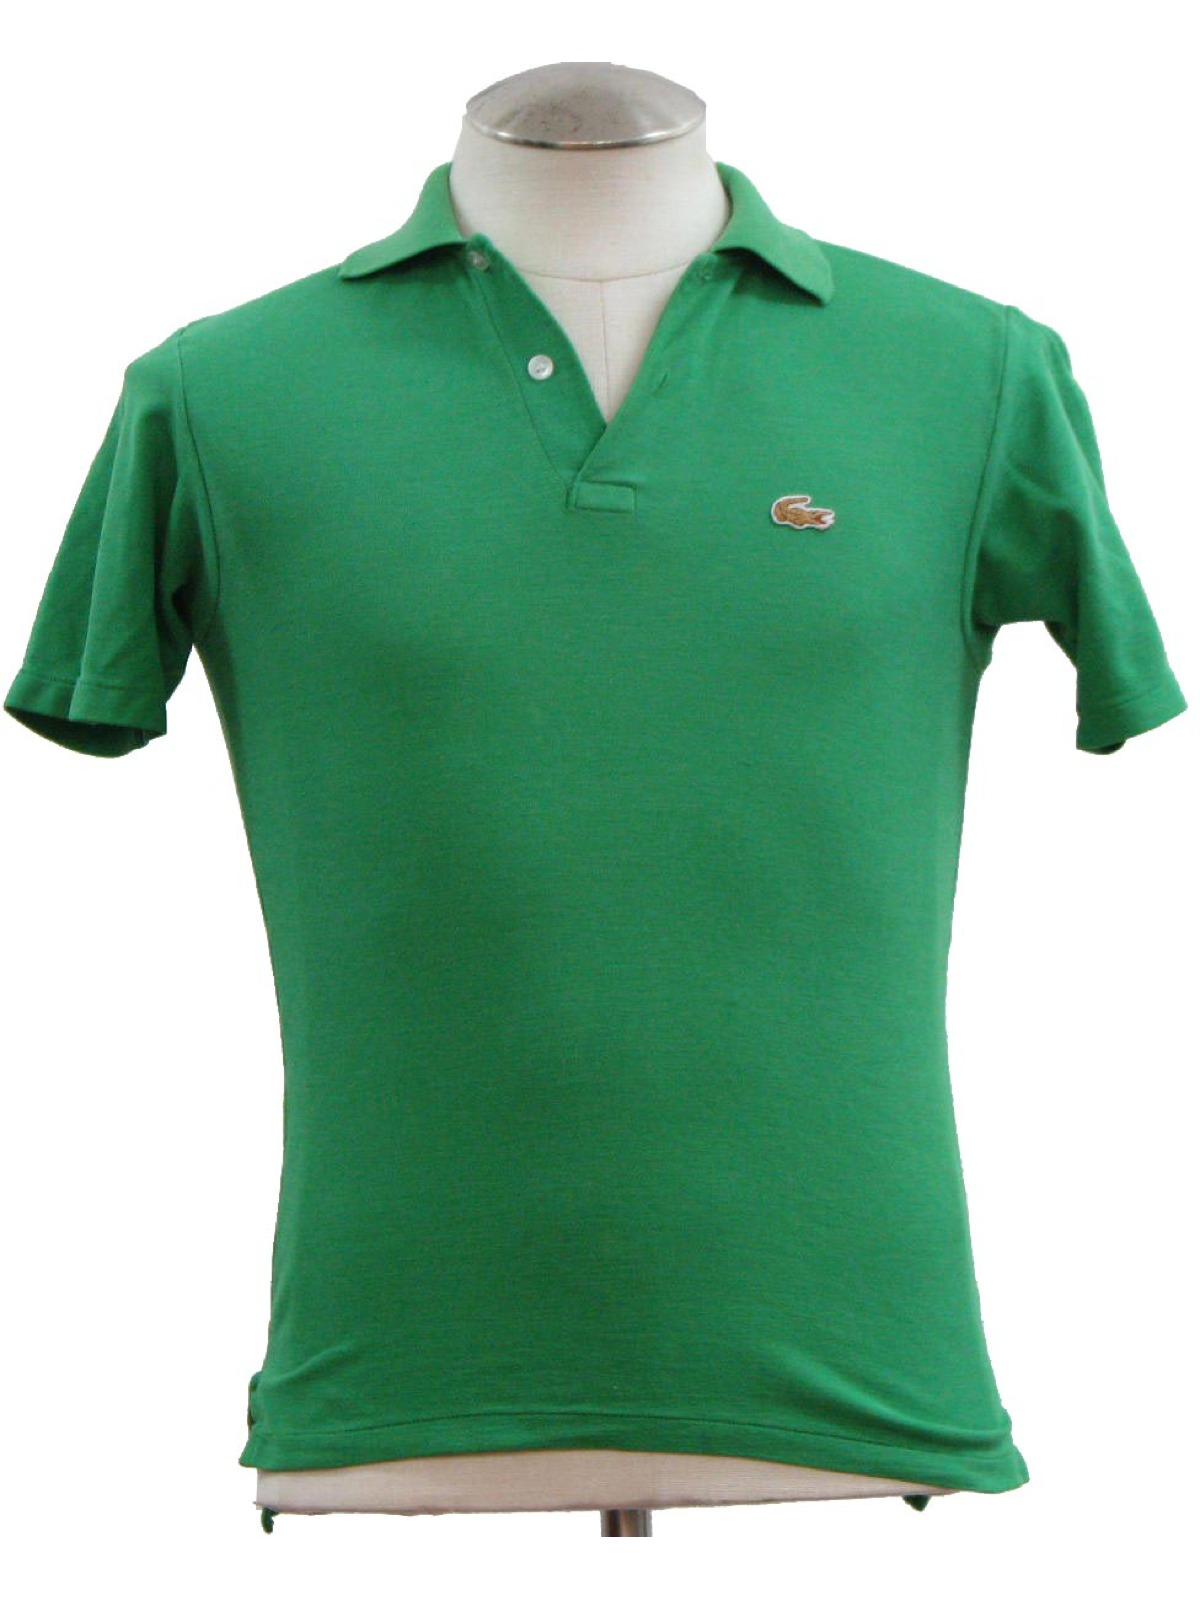 88f8f45d31c88b Eighties Izod Shirt: 80s -Izod- Mens or boys green woven cotton and ...